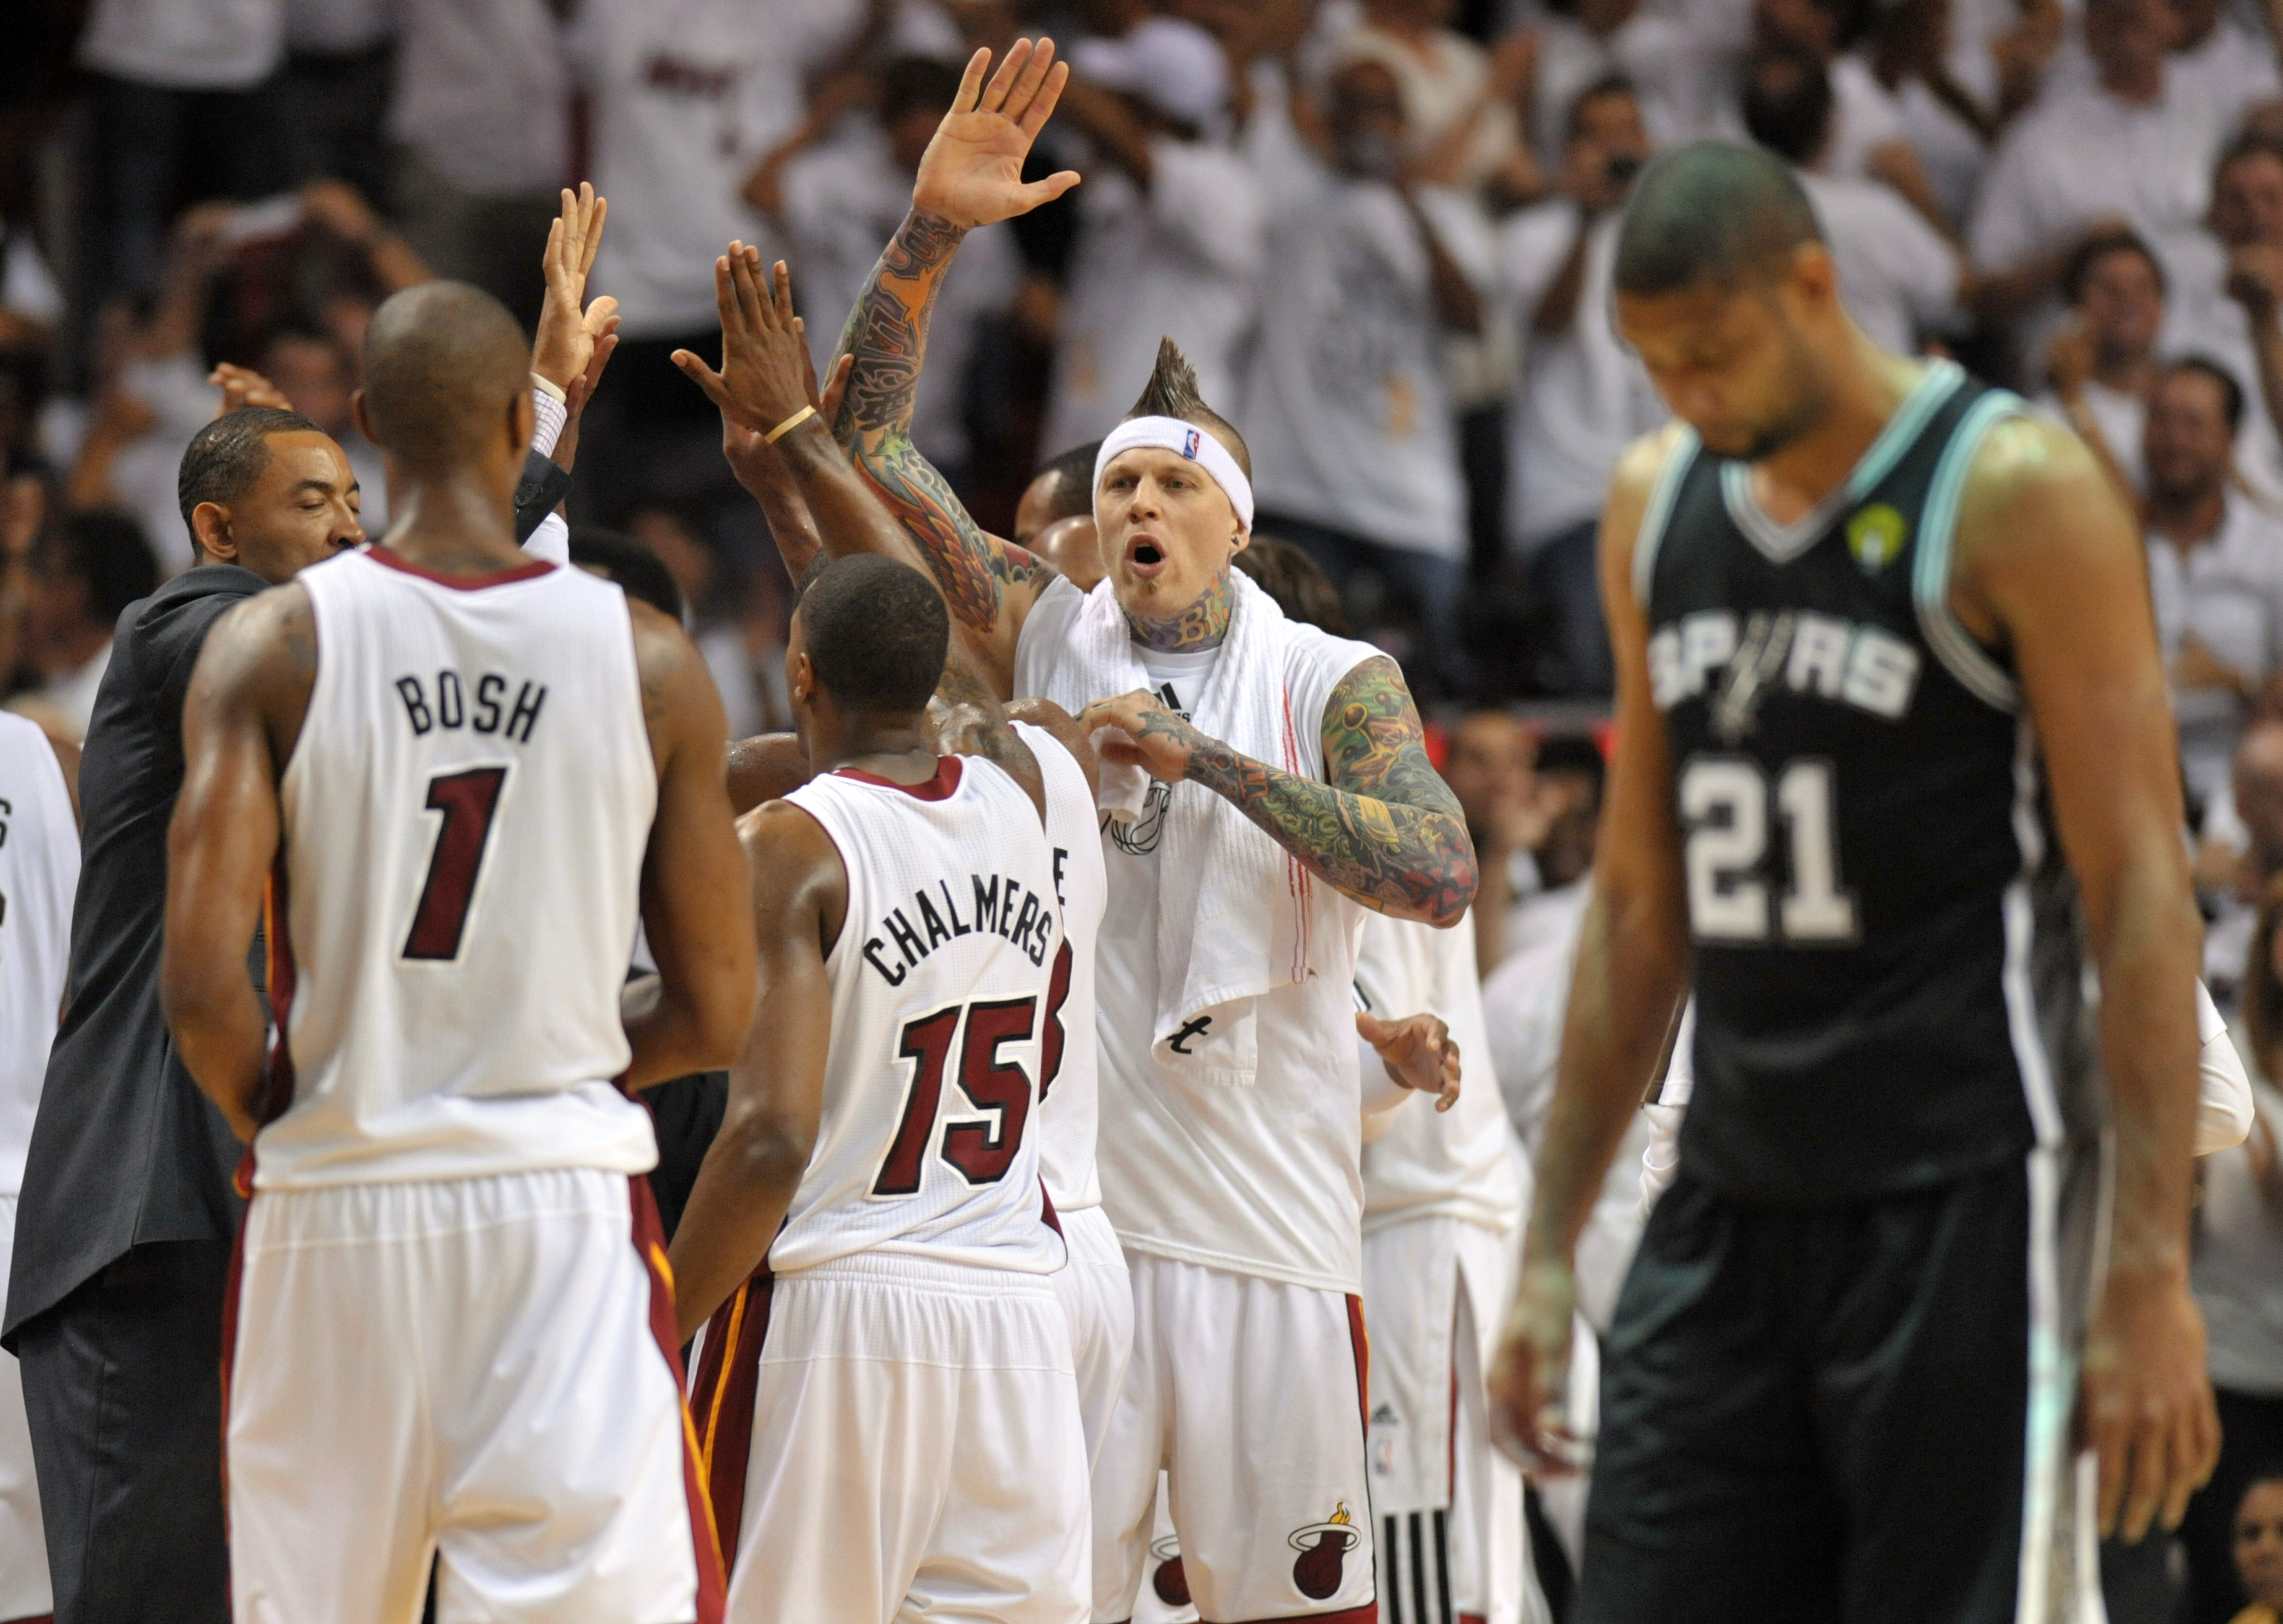 Tim Duncan walks off the court while the Heat celebrate. (USA TODAY Sports)